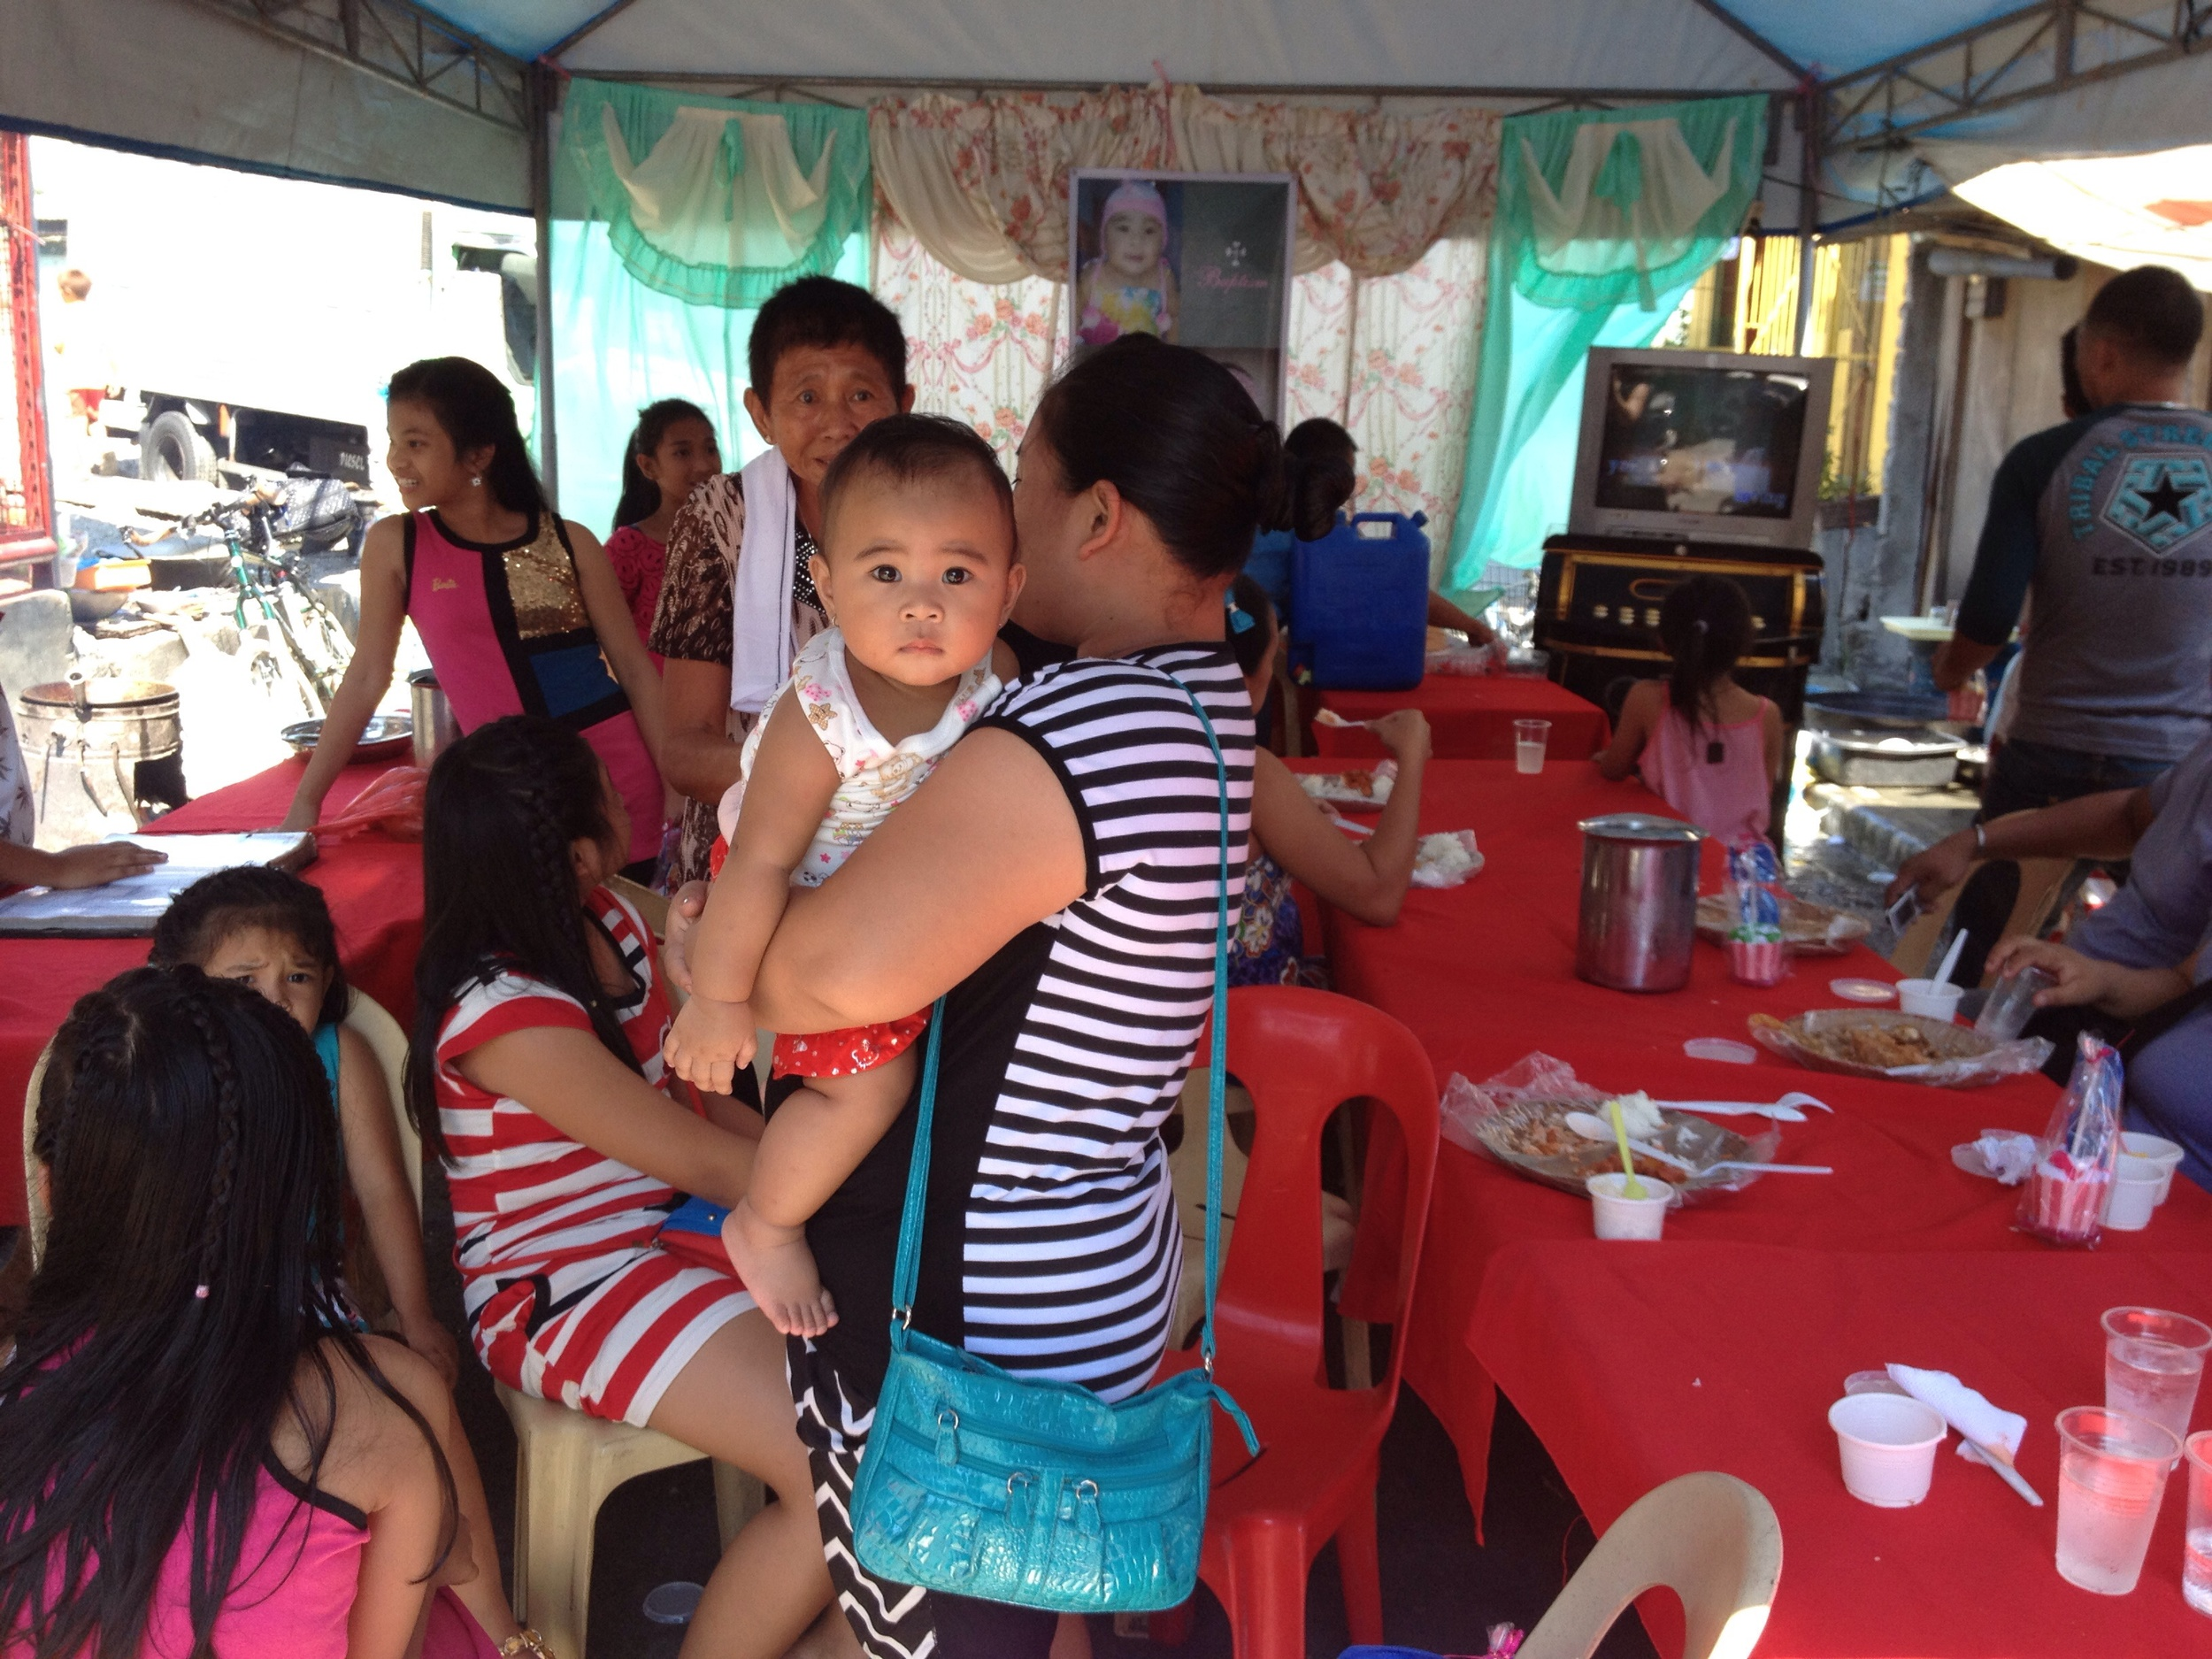 I was invited inside and offered food from the buffet and a chance to sing karaoke with guests for this baby's baptism celebration.